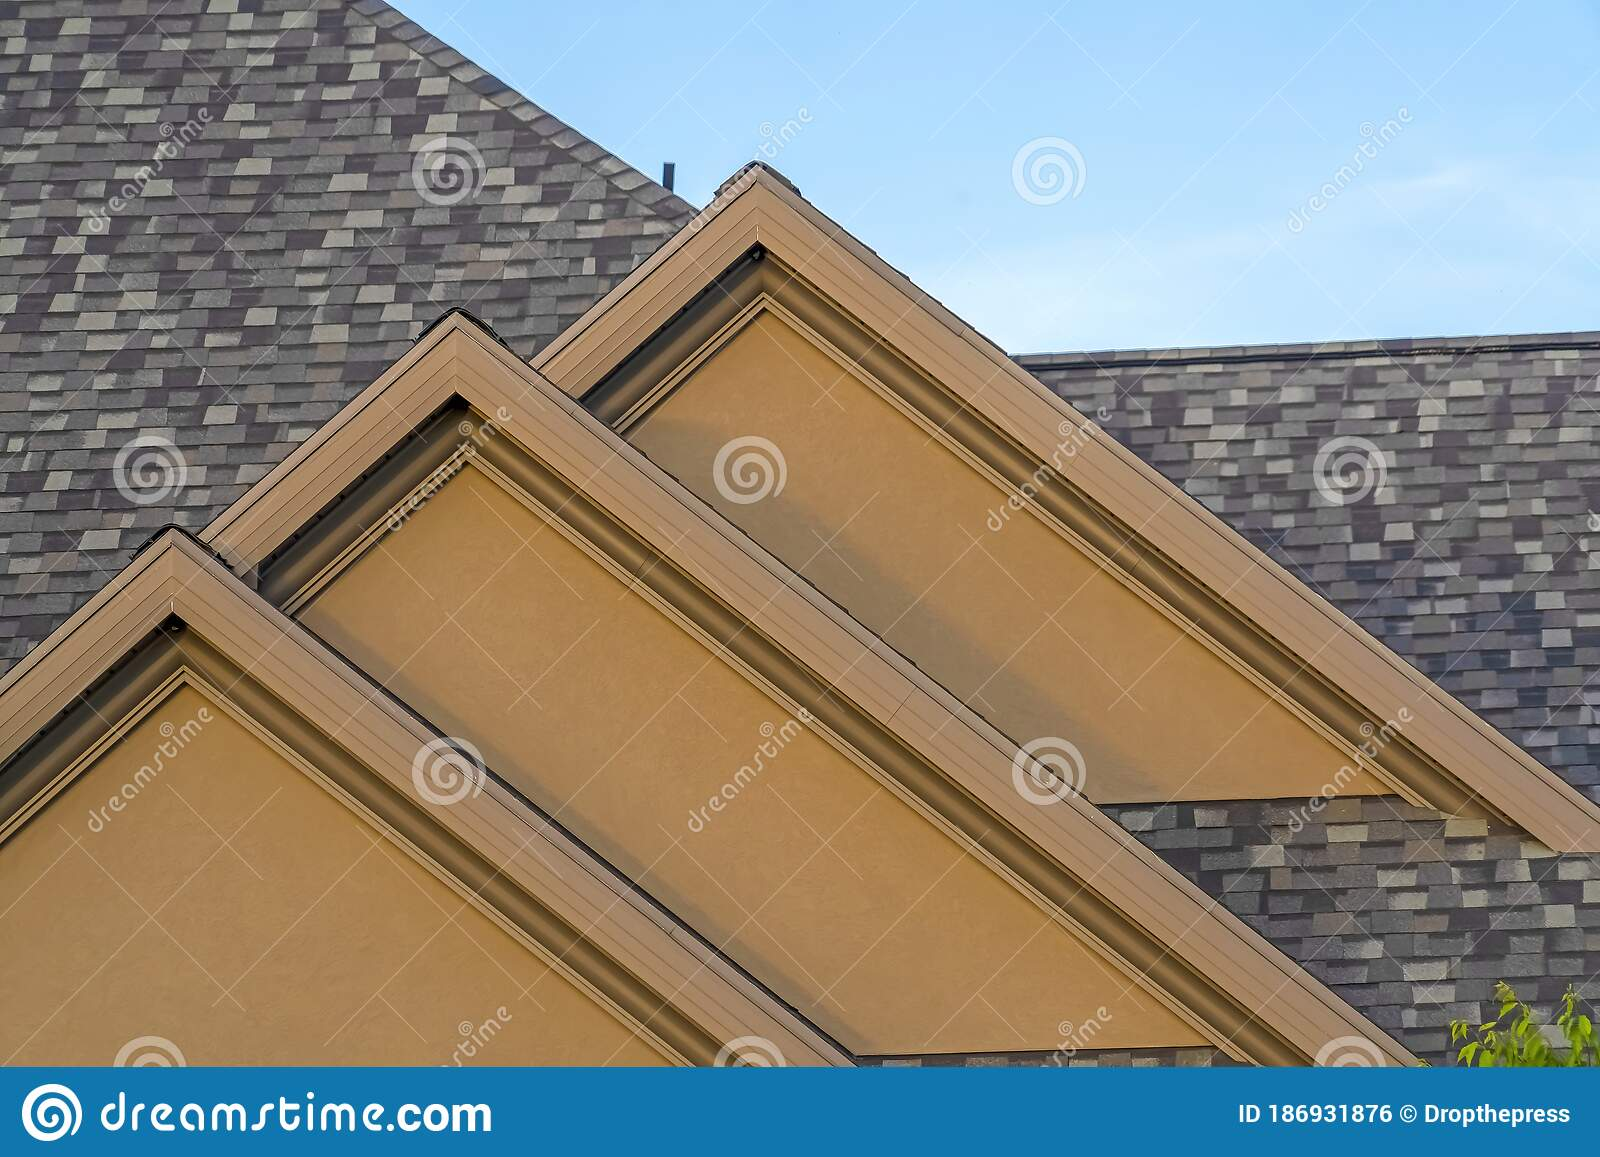 House Exterior With Front Gable Roof Design Against Blue Sky Background Stock Photo Image Of Outdoors Residence 186931876